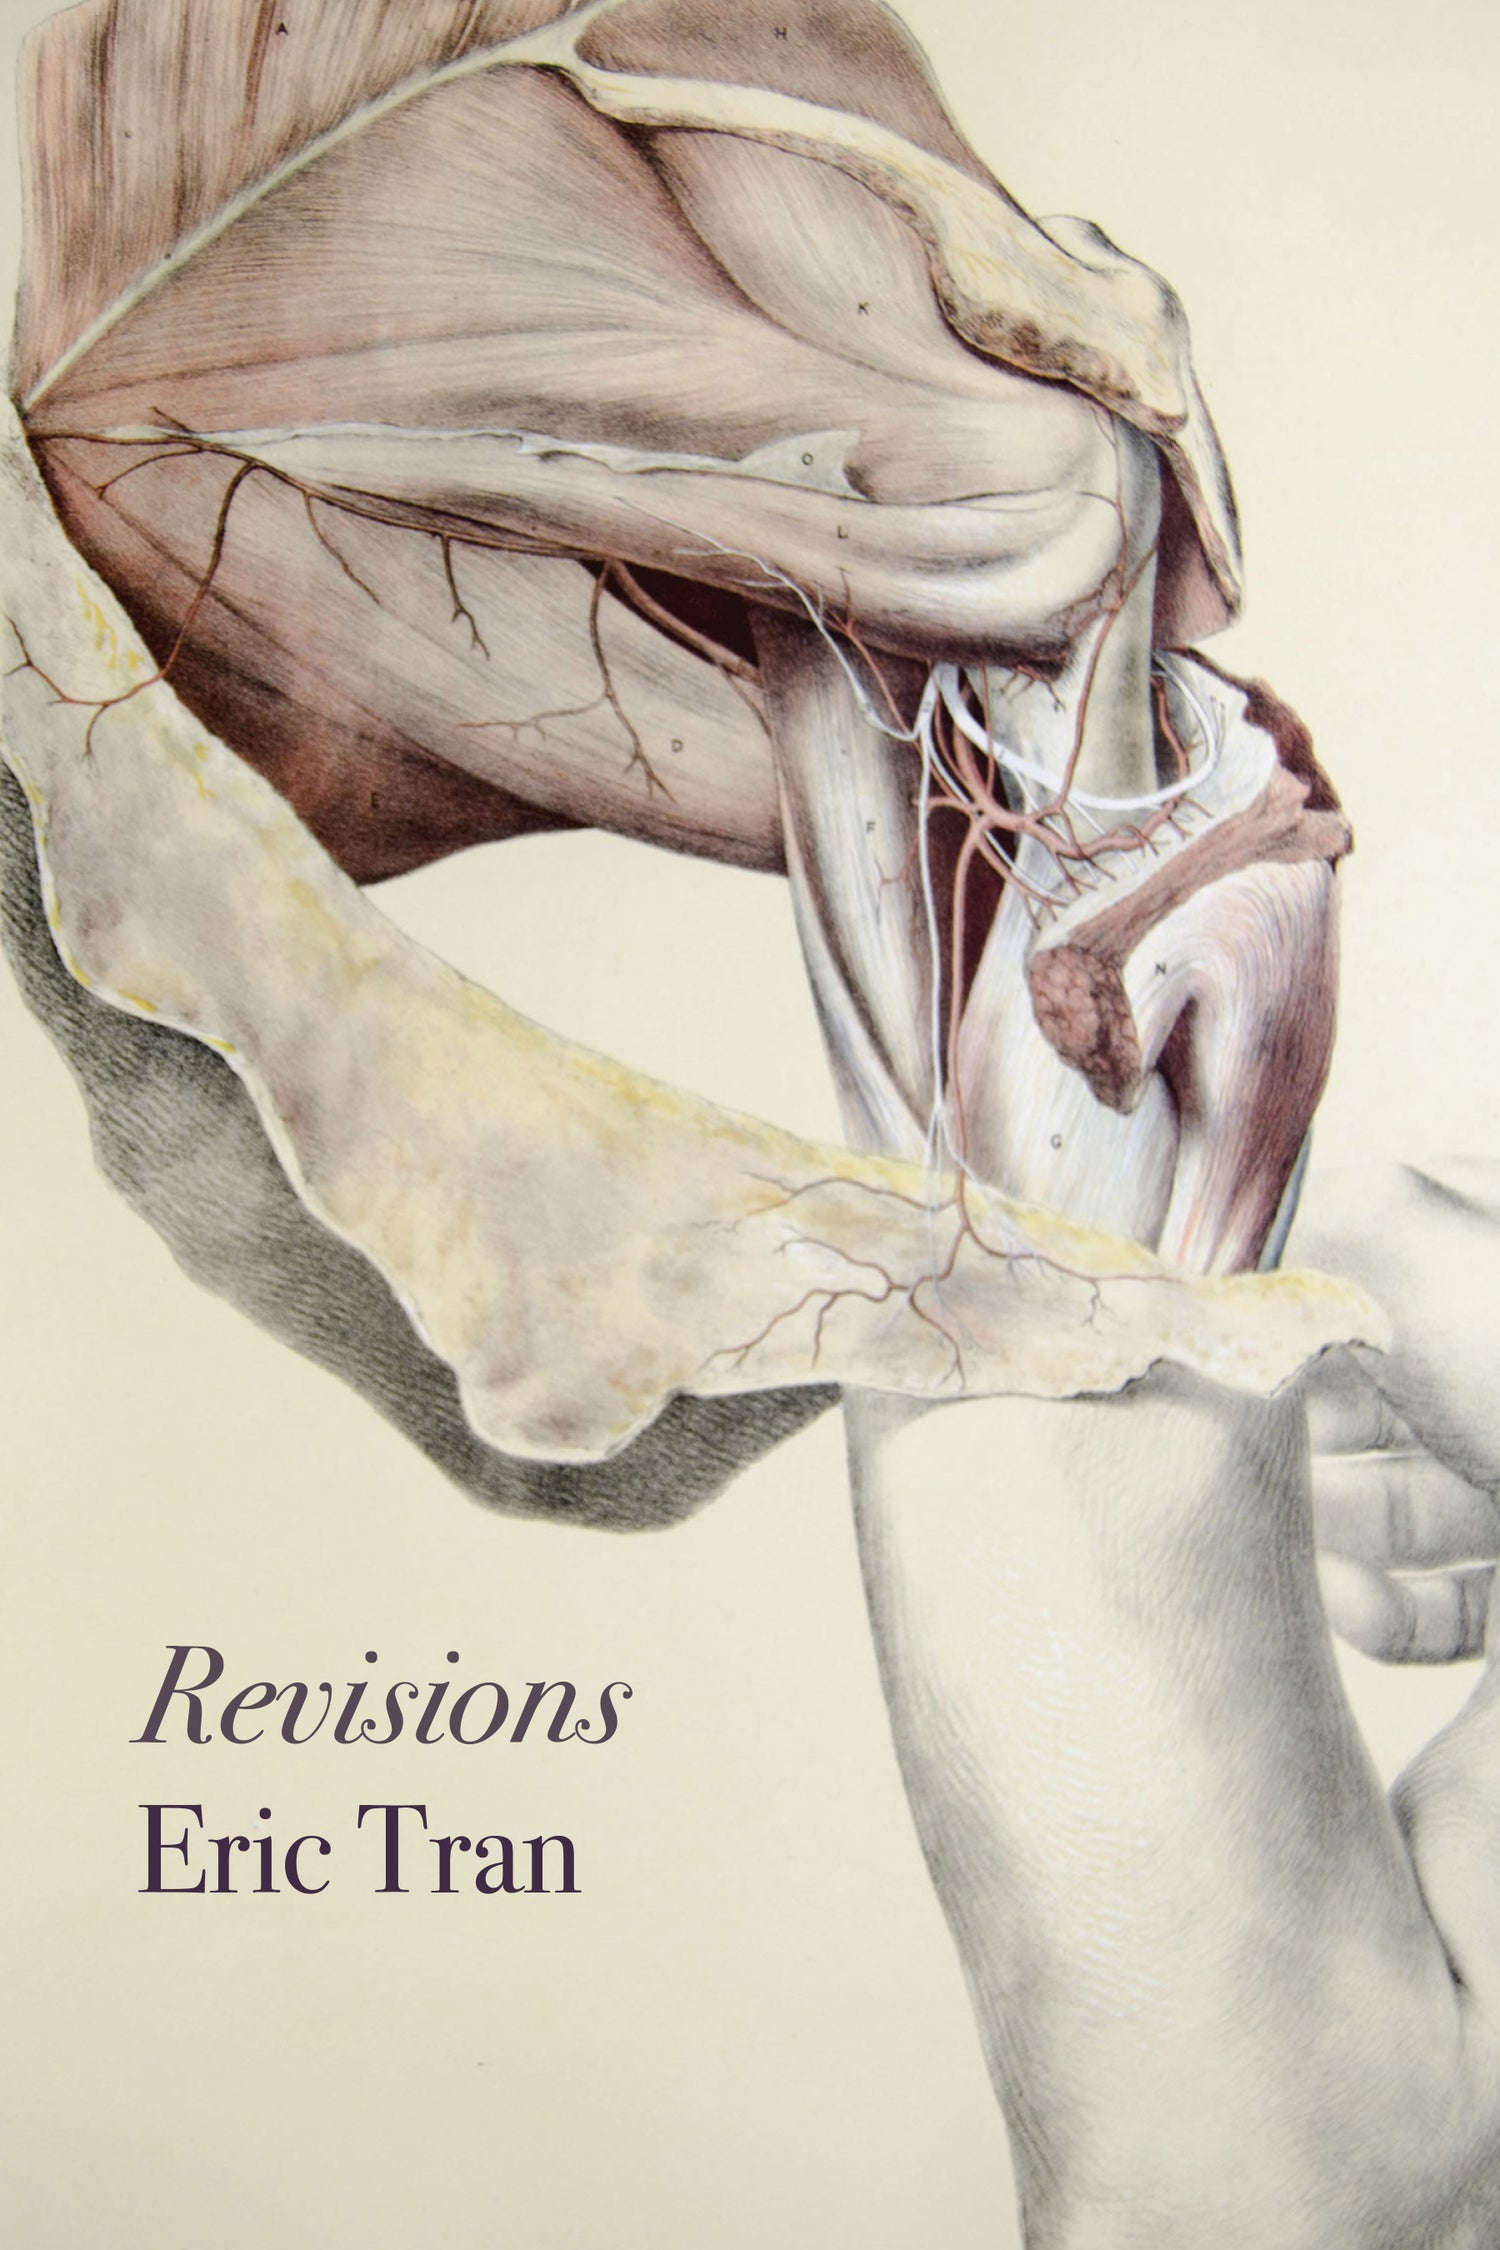 Image of Revisions by Eric Tran